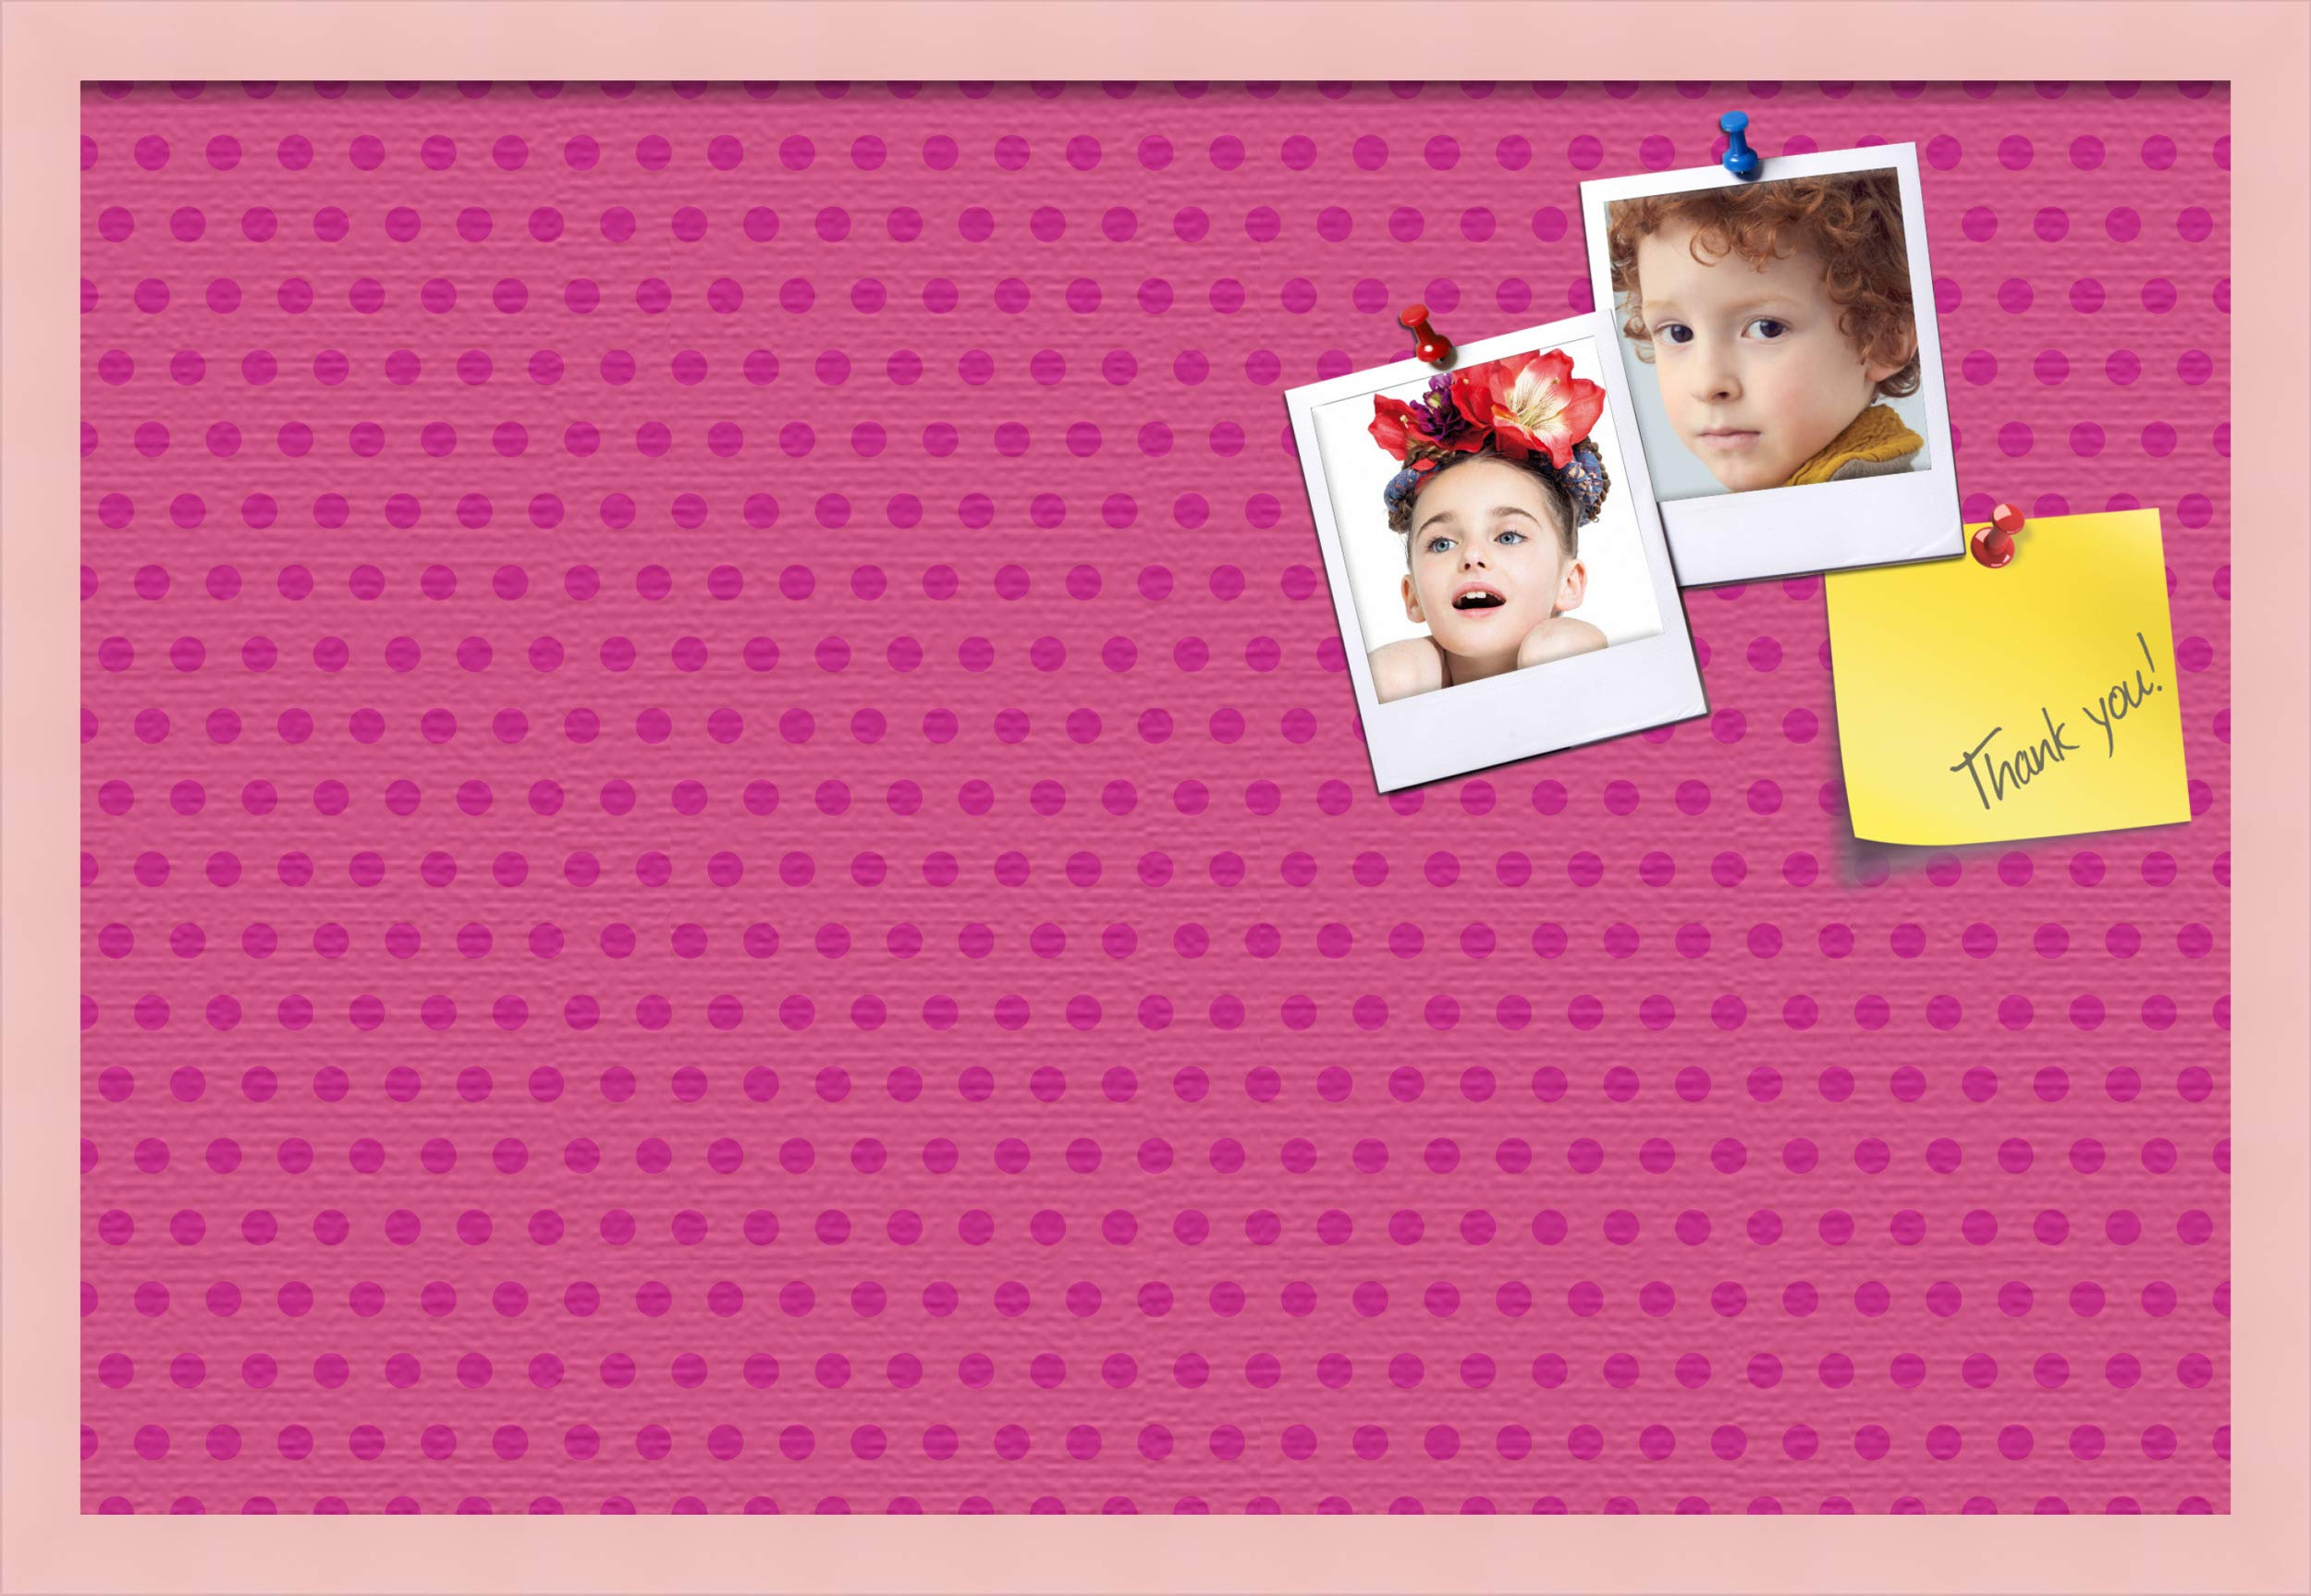 ArtToFrames 30x20 Inch Custom Cork Bulletin Board. This Colorful Pattern Pin Board Comes Has a Fabric Style Canvas Finish, in a Baby Pink on Beech Frame (PinPix-450-30x20_0066-81792-YPNK) by PinPix